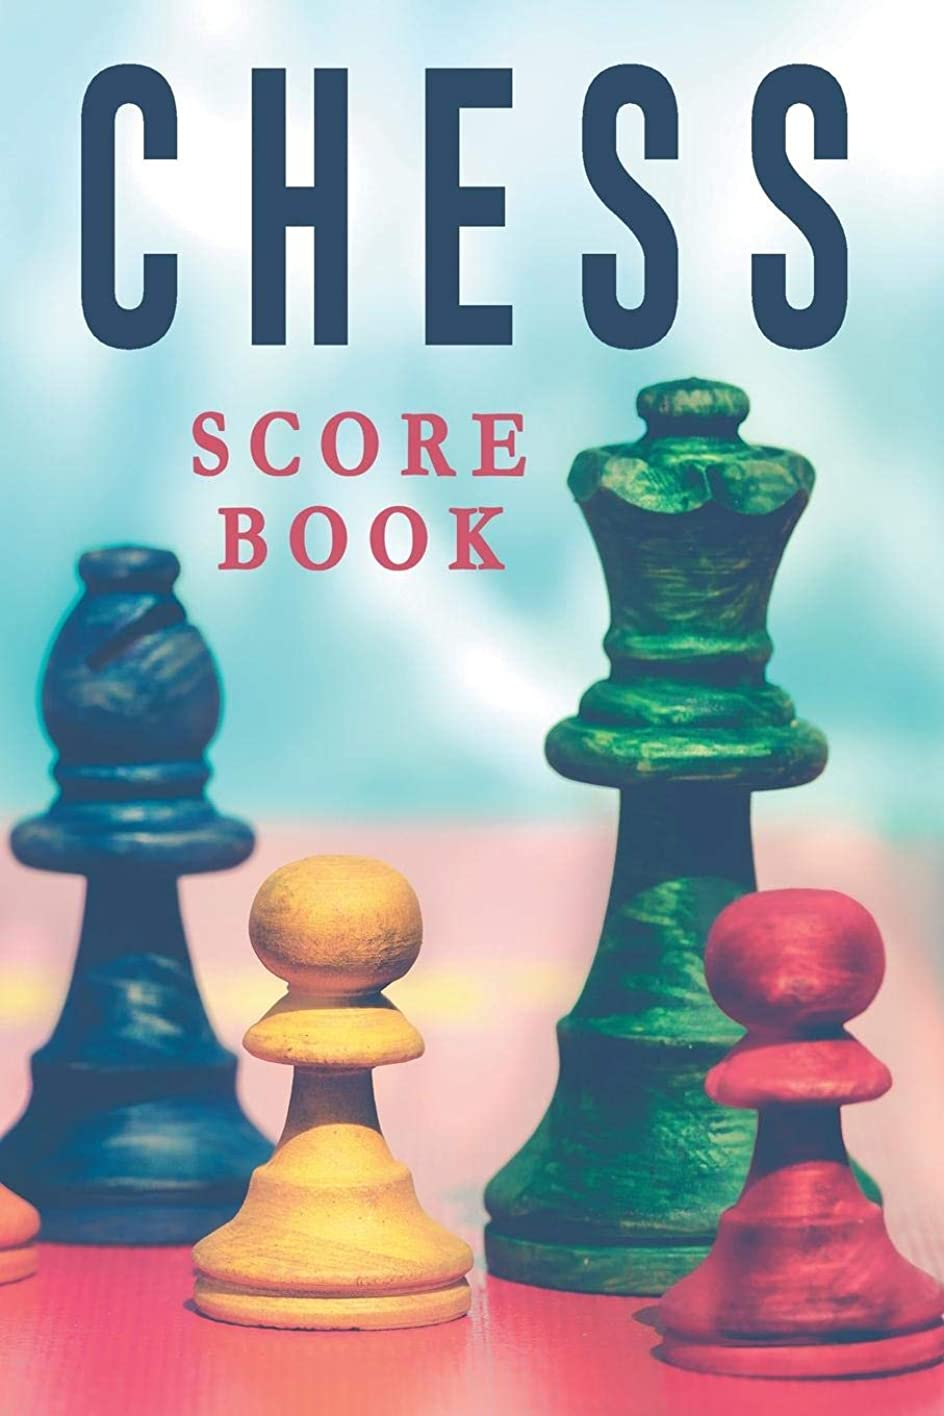 ヘルパー建築ハンディキャップChess Score Book: The Ultimate Chess Board Game Notation Record Keeping Score Sheets for Informal or Tournament Play